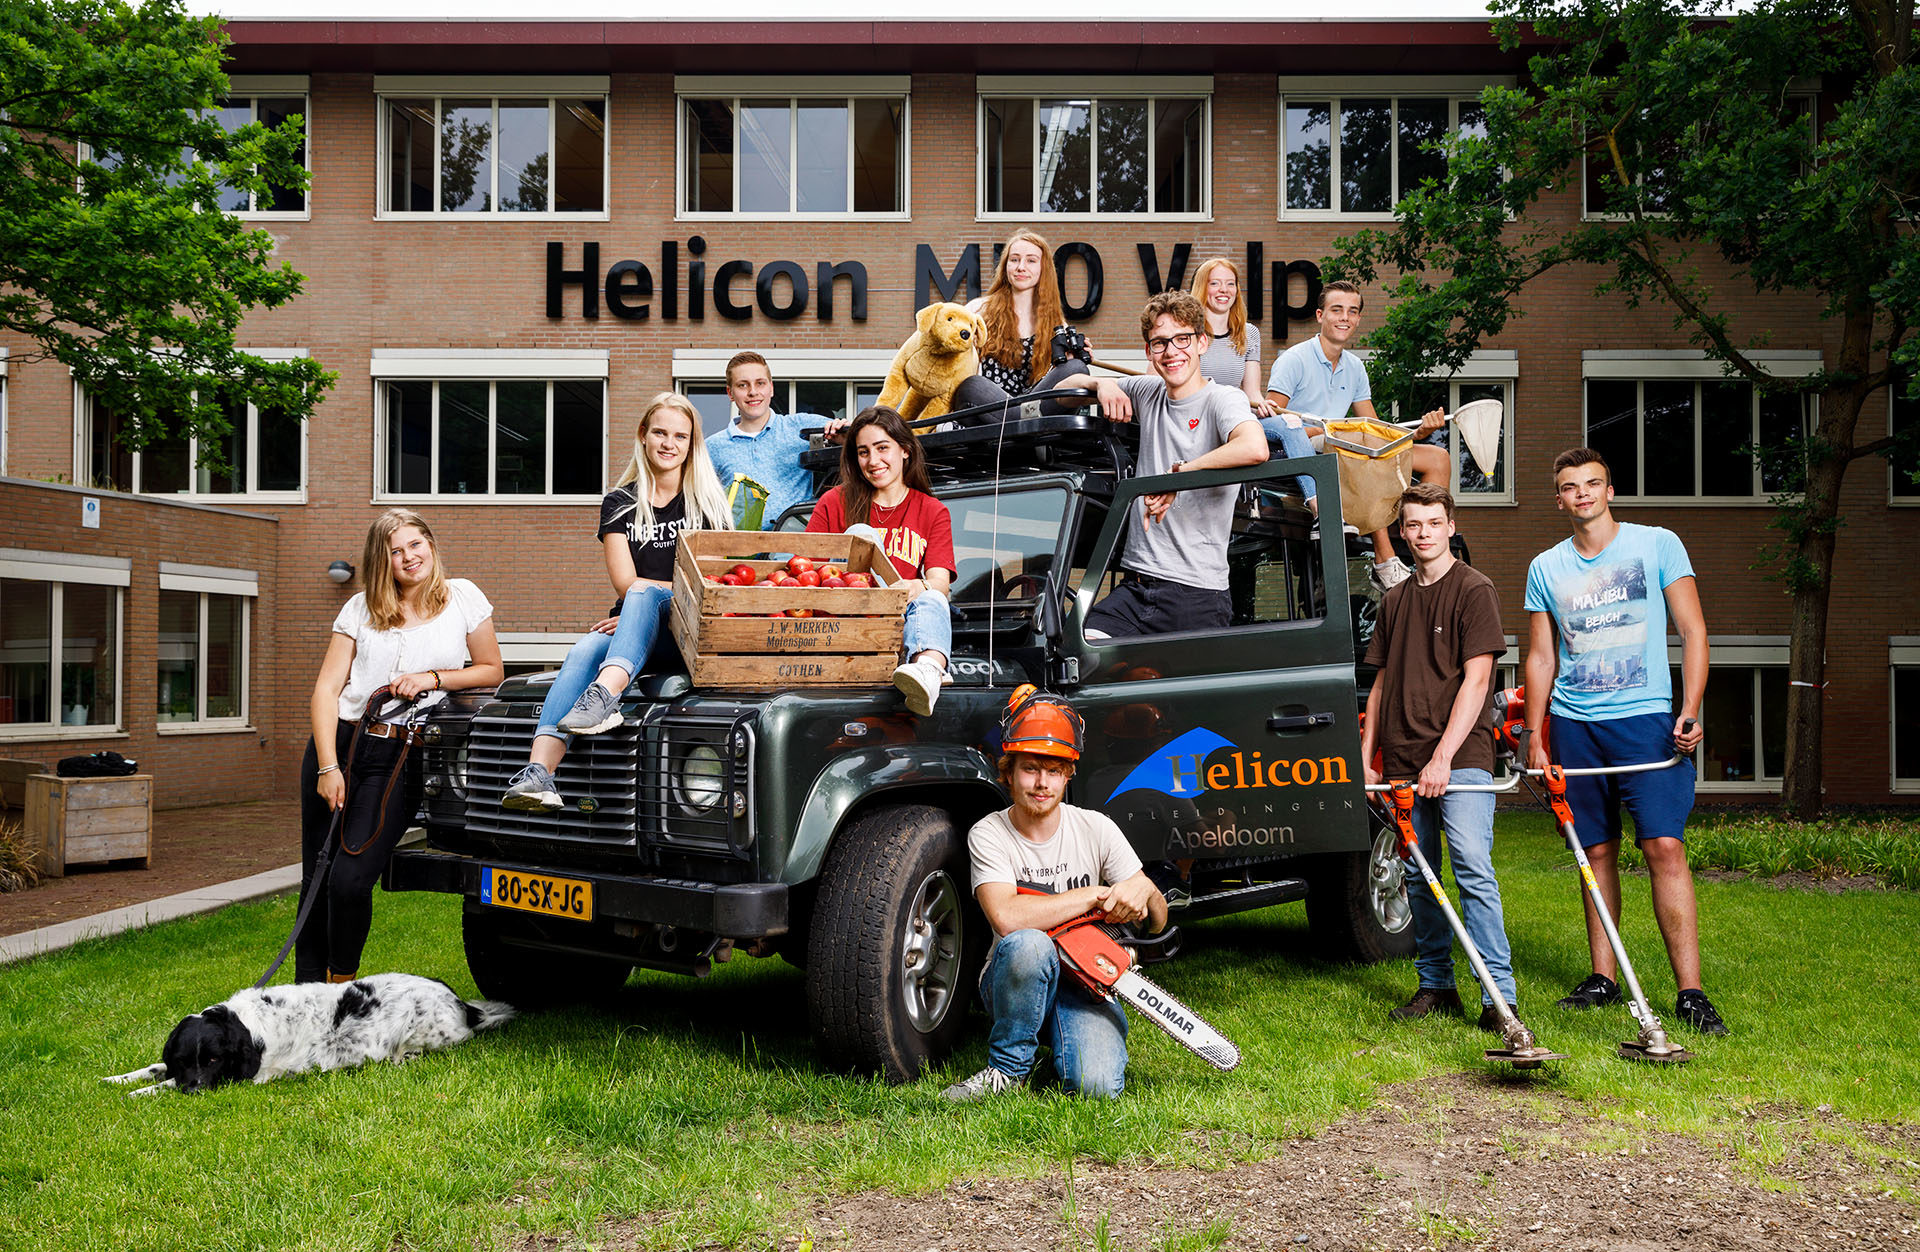 Helicon Opleidingen_MBO Velp_1225_A3A3052